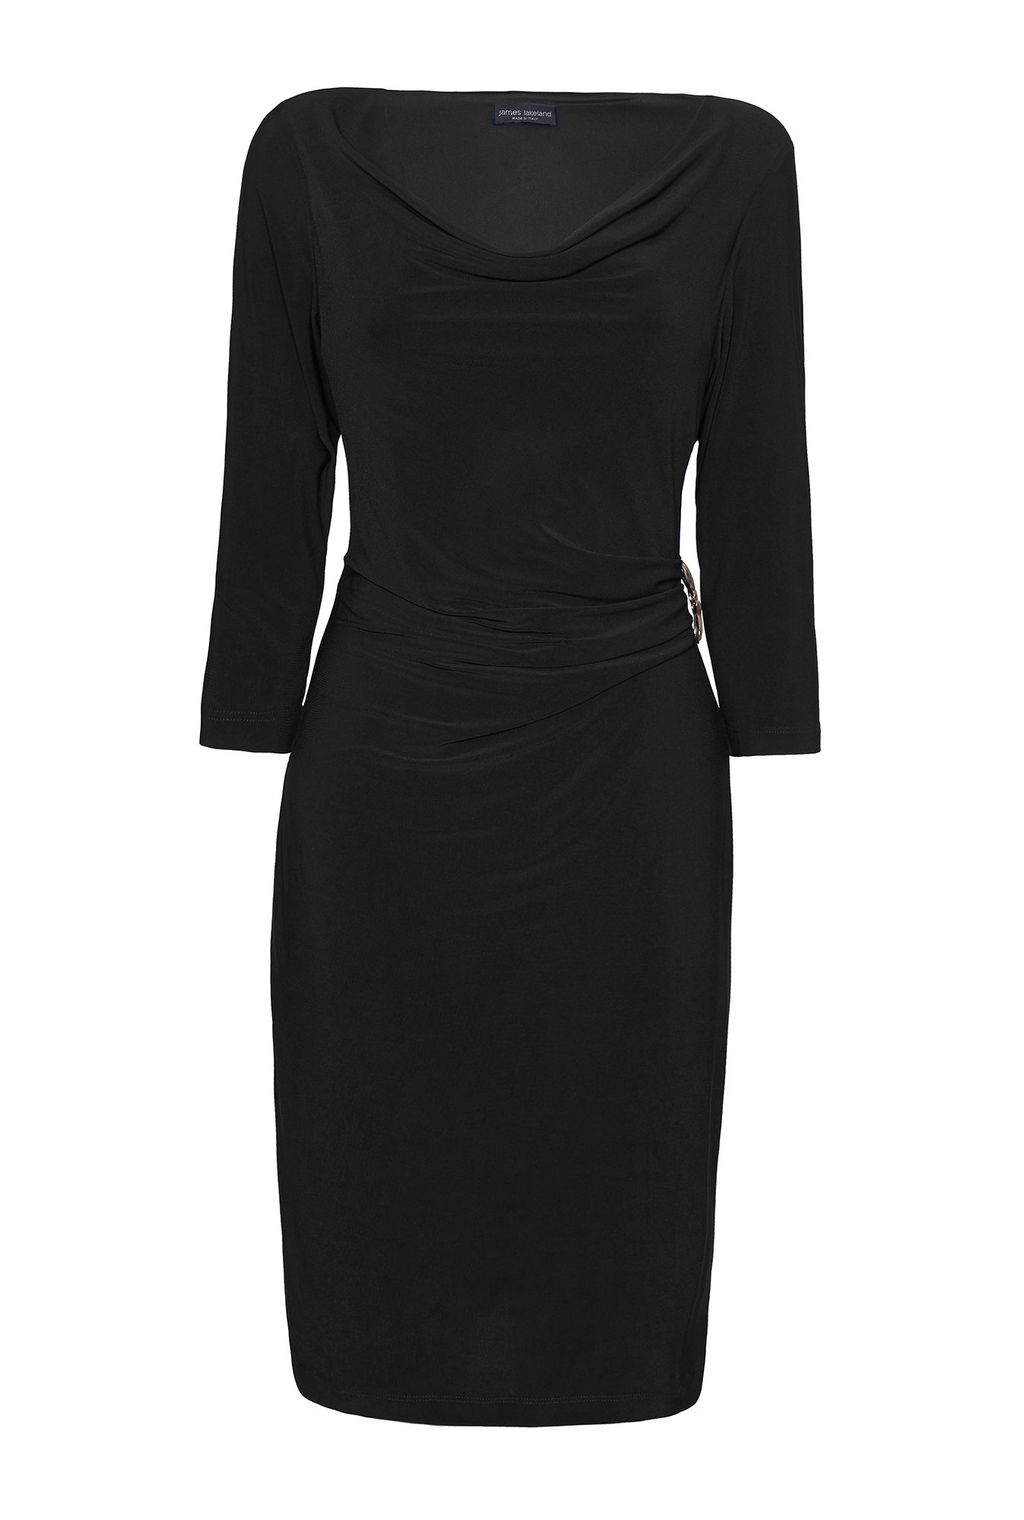 3/4 Sleeve Side Ruched Dress, Black - style: shift; neckline: cowl/draped neck; pattern: plain; waist detail: twist front waist detail/nipped in at waist on one side/soft pleats/draping/ruching/gathering waist detail; hip detail: fitted at hip; predominant colour: black; occasions: evening; length: just above the knee; fit: body skimming; fibres: polyester/polyamide - stretch; sleeve length: 3/4 length; sleeve style: standard; texture group: jersey - clingy; pattern type: fabric; season: s/s 2016; wardrobe: event